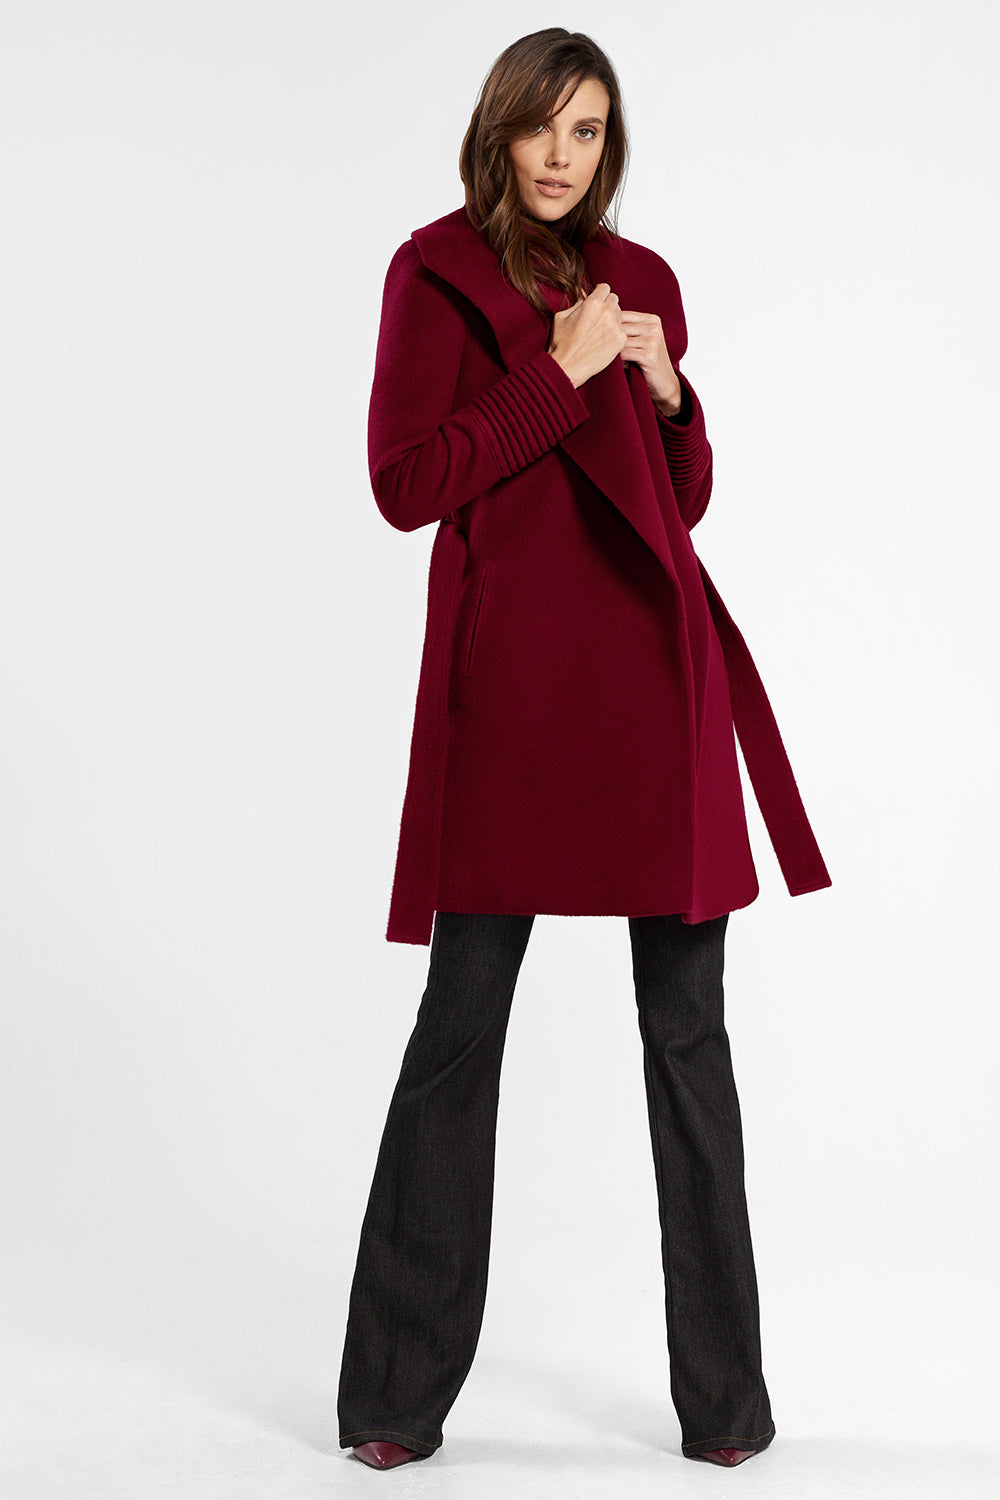 Sentaler Mid Length Shawl Collar Wrap Coat featured in Baby Alpaca and available in Garnet Red. Seen in action.